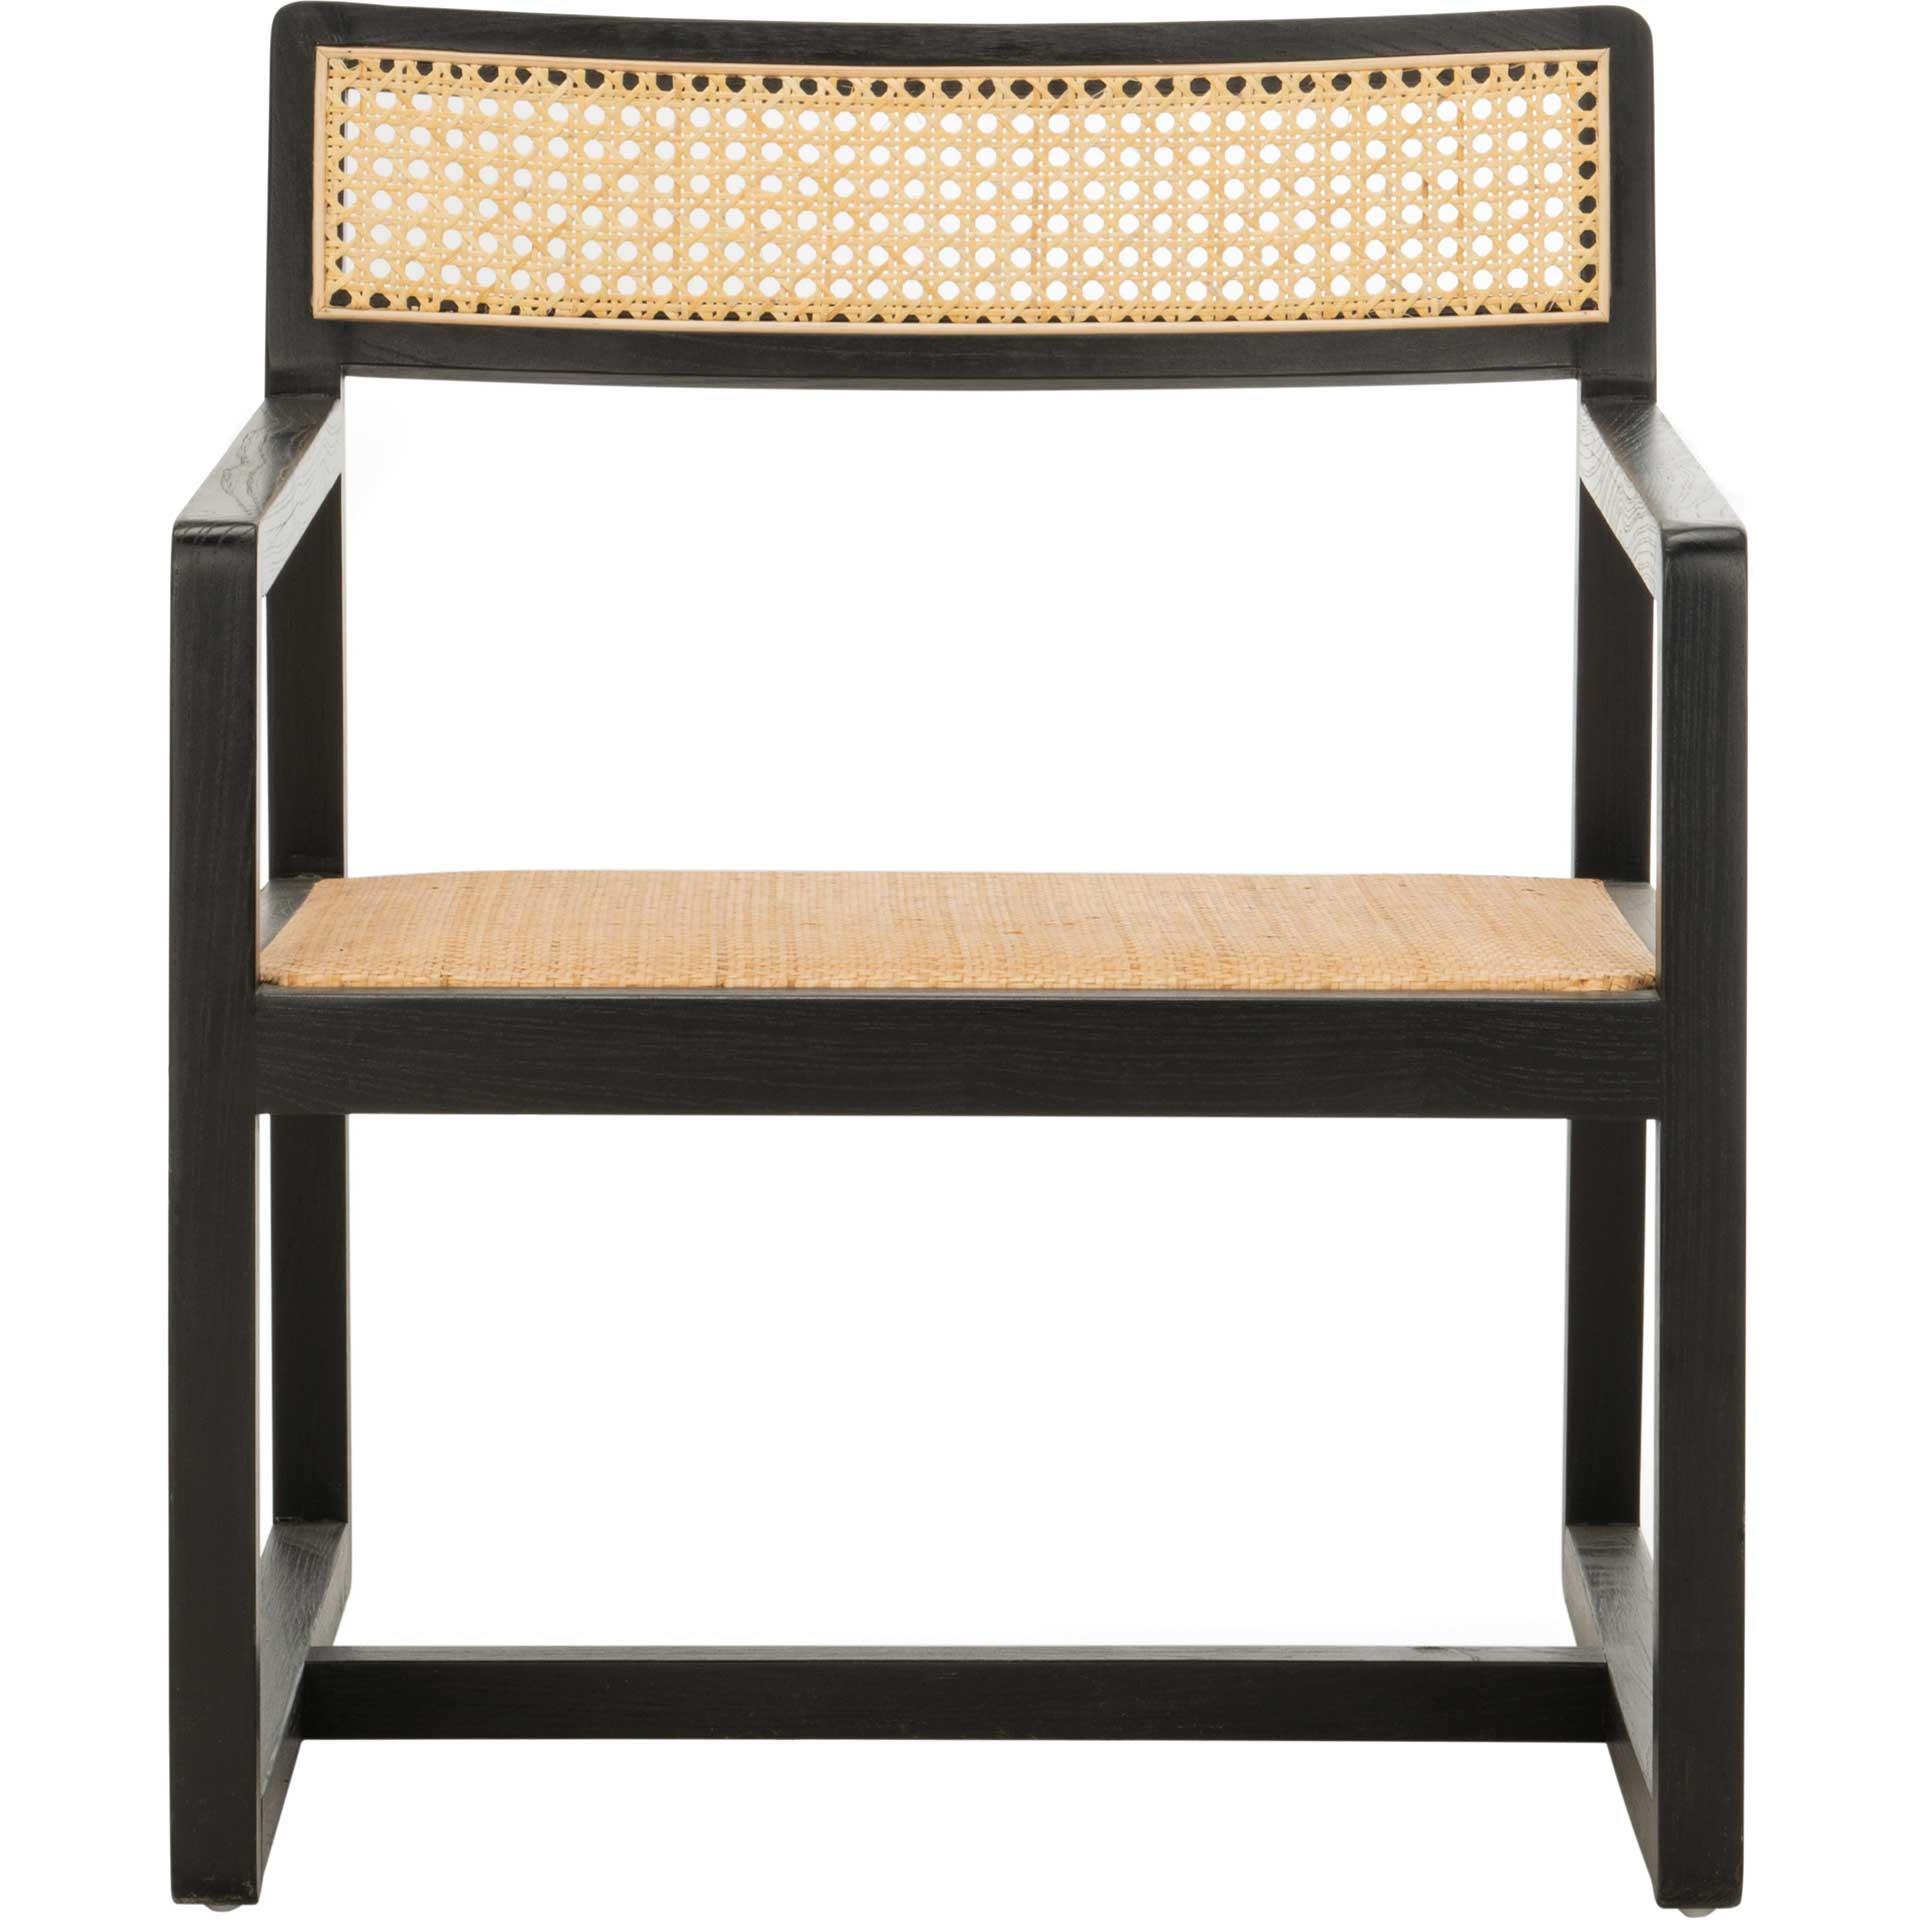 Lucy Cane Accent Chair Black/Natural